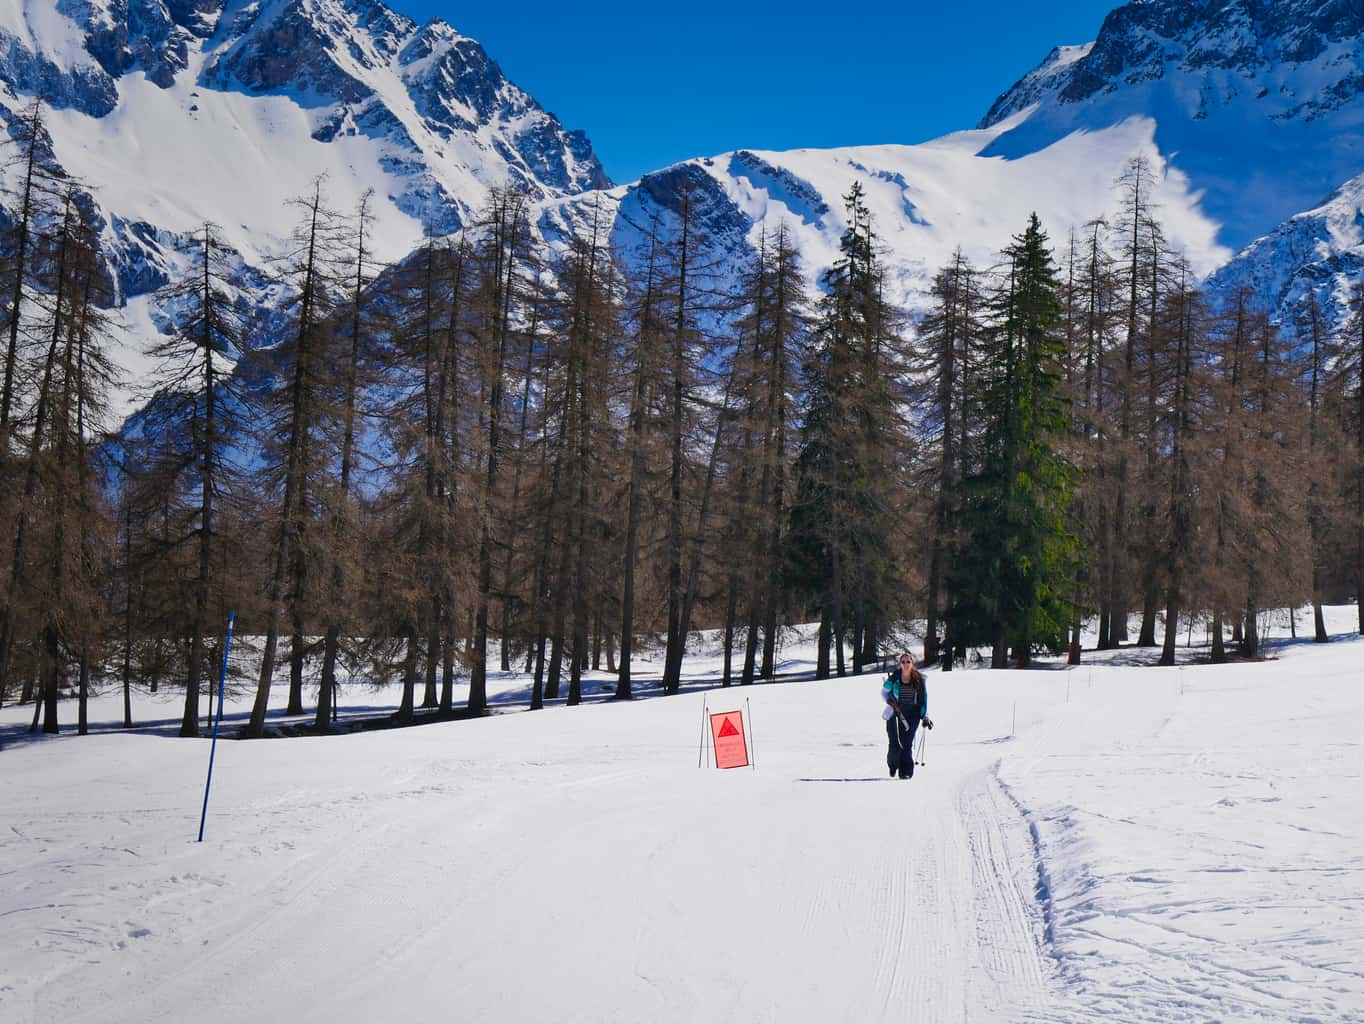 Kalyn walking carrying her Nordic Skis surrounded by snowy mountains and trees in the Nordic Ski Area in The French Alps